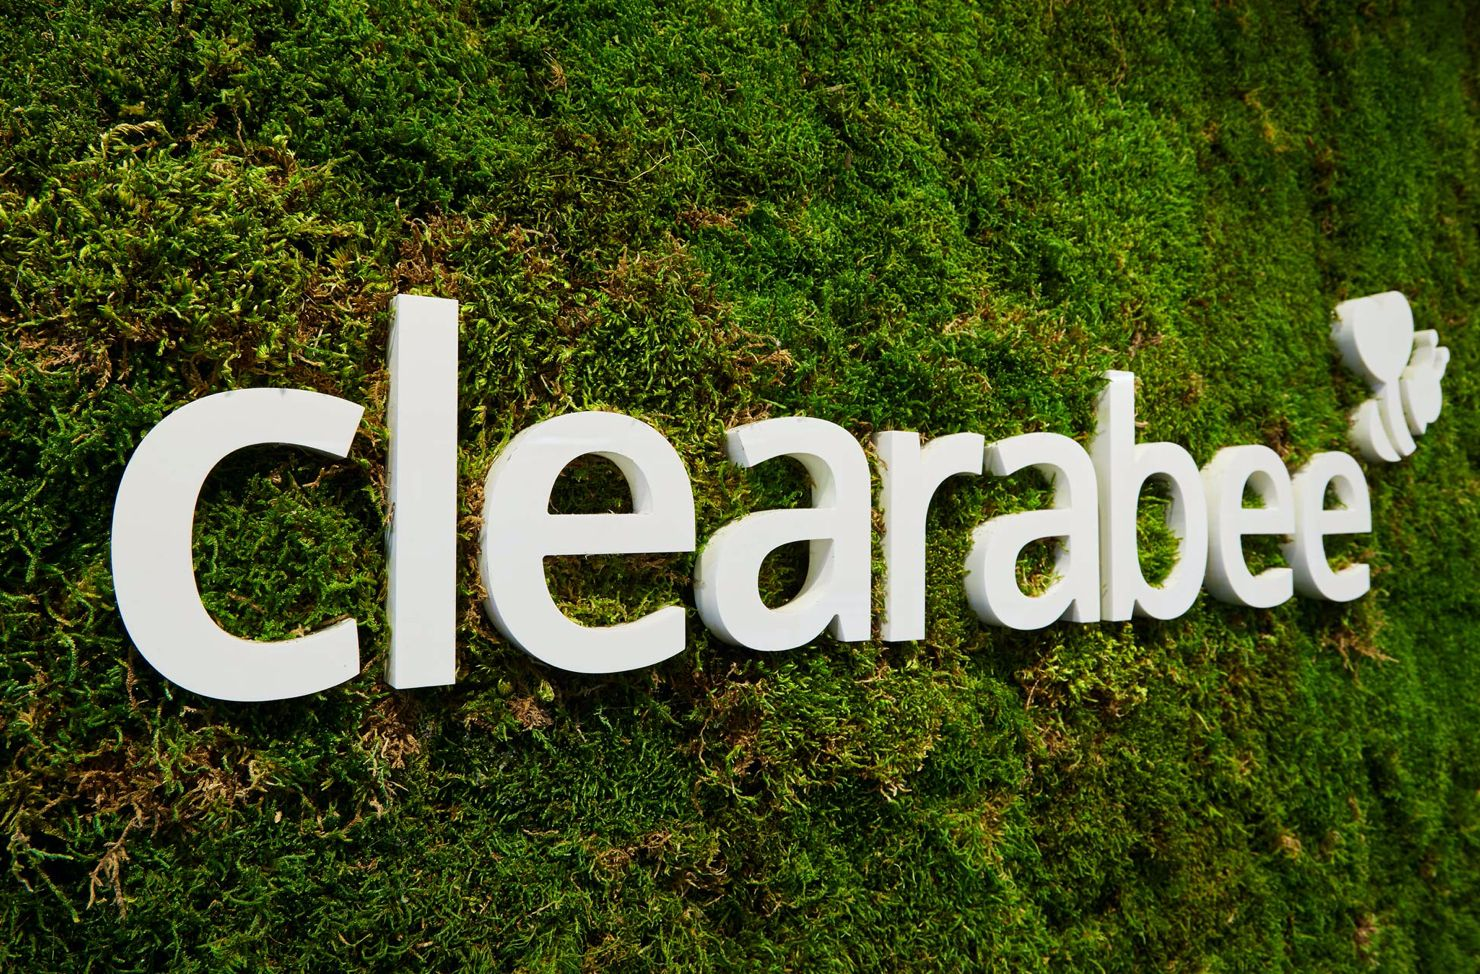 Clearabee on a moss wall